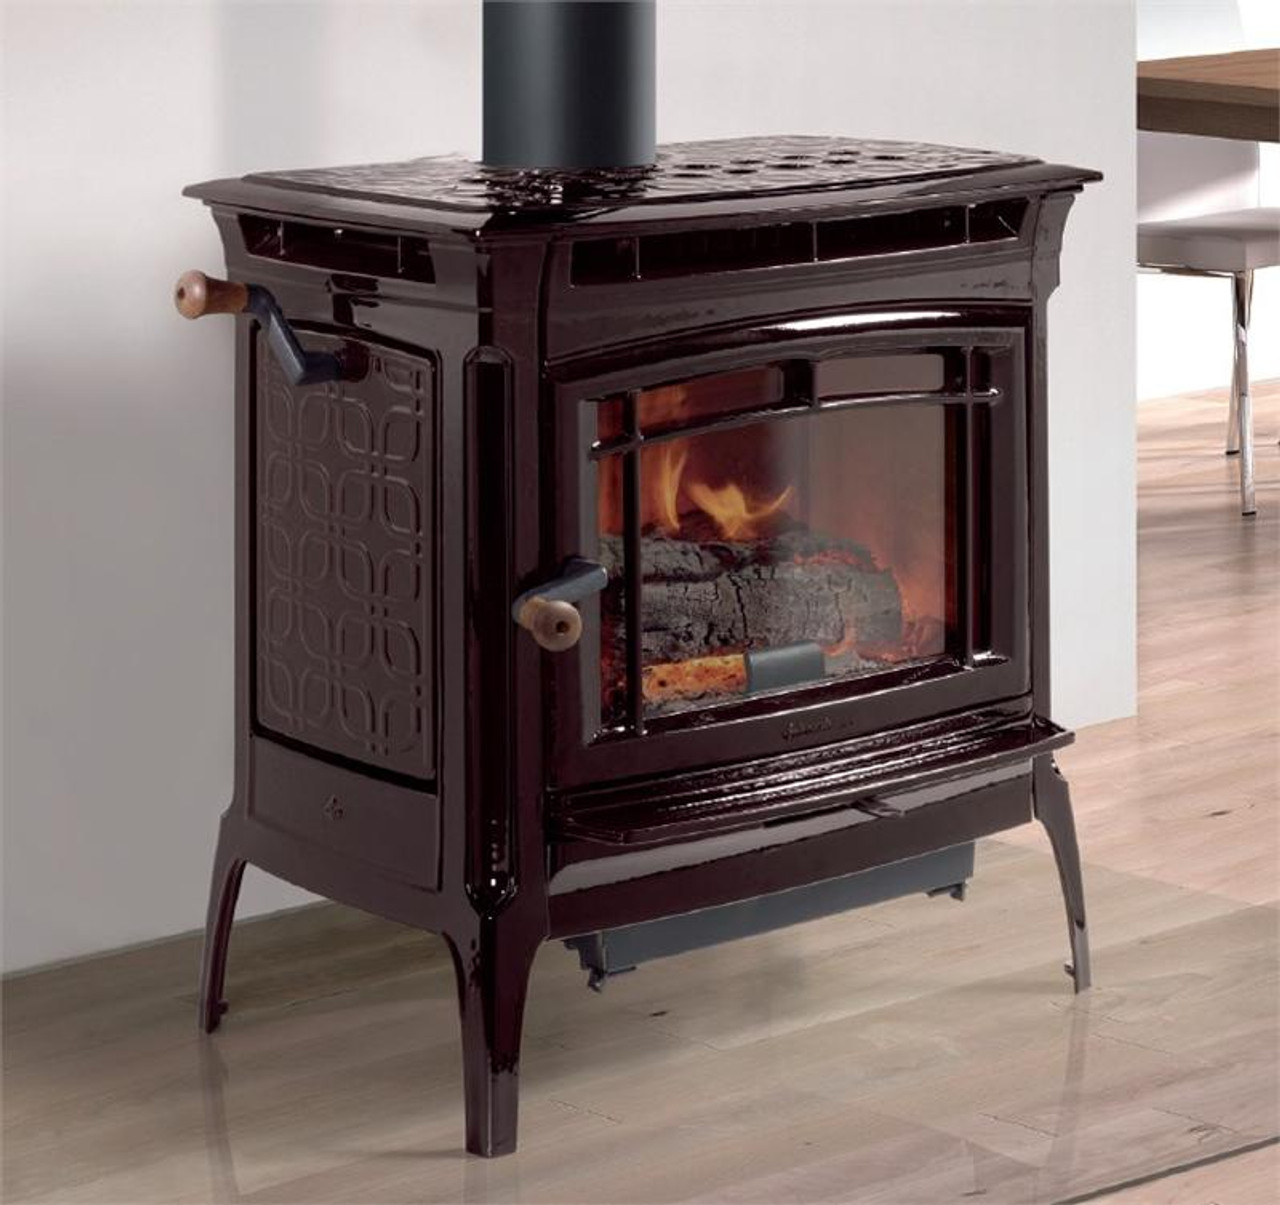 Hearthstone 8362 Manchester Truhybrid Wood Stove